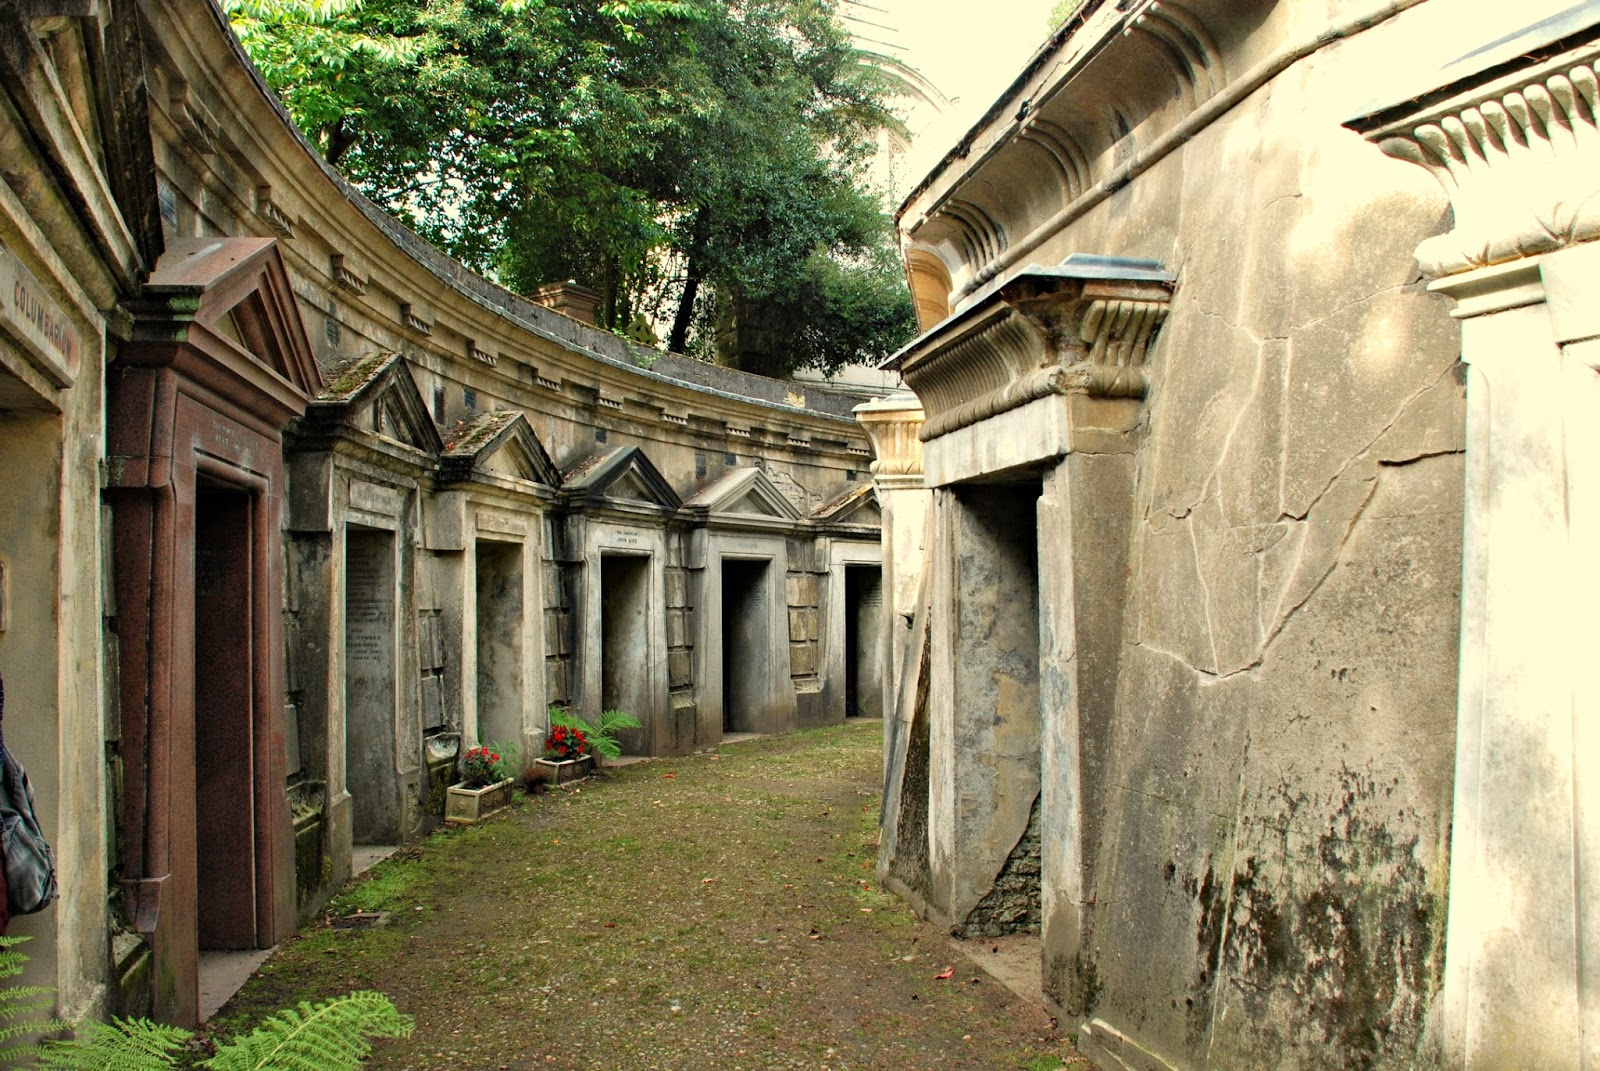 The Circle of Lebanon, Highgate Cemetery, London